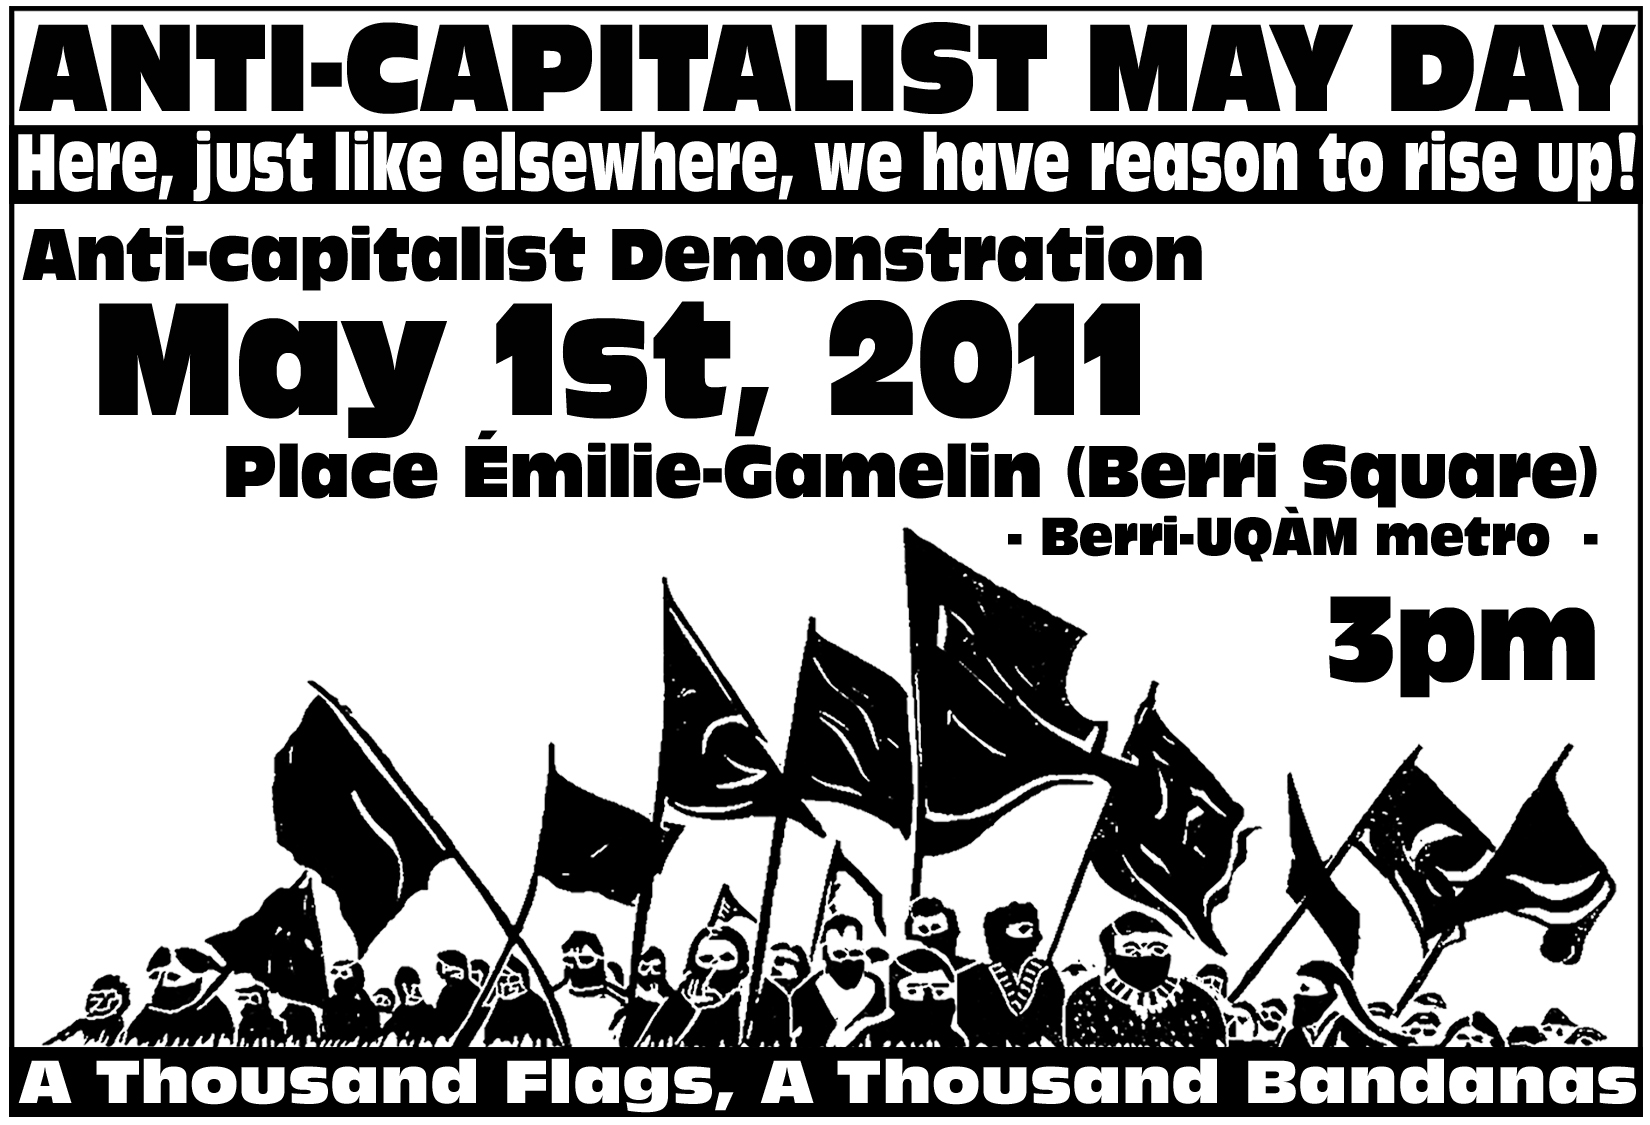 ANTI-CAPITALIST MAY DAY 2011